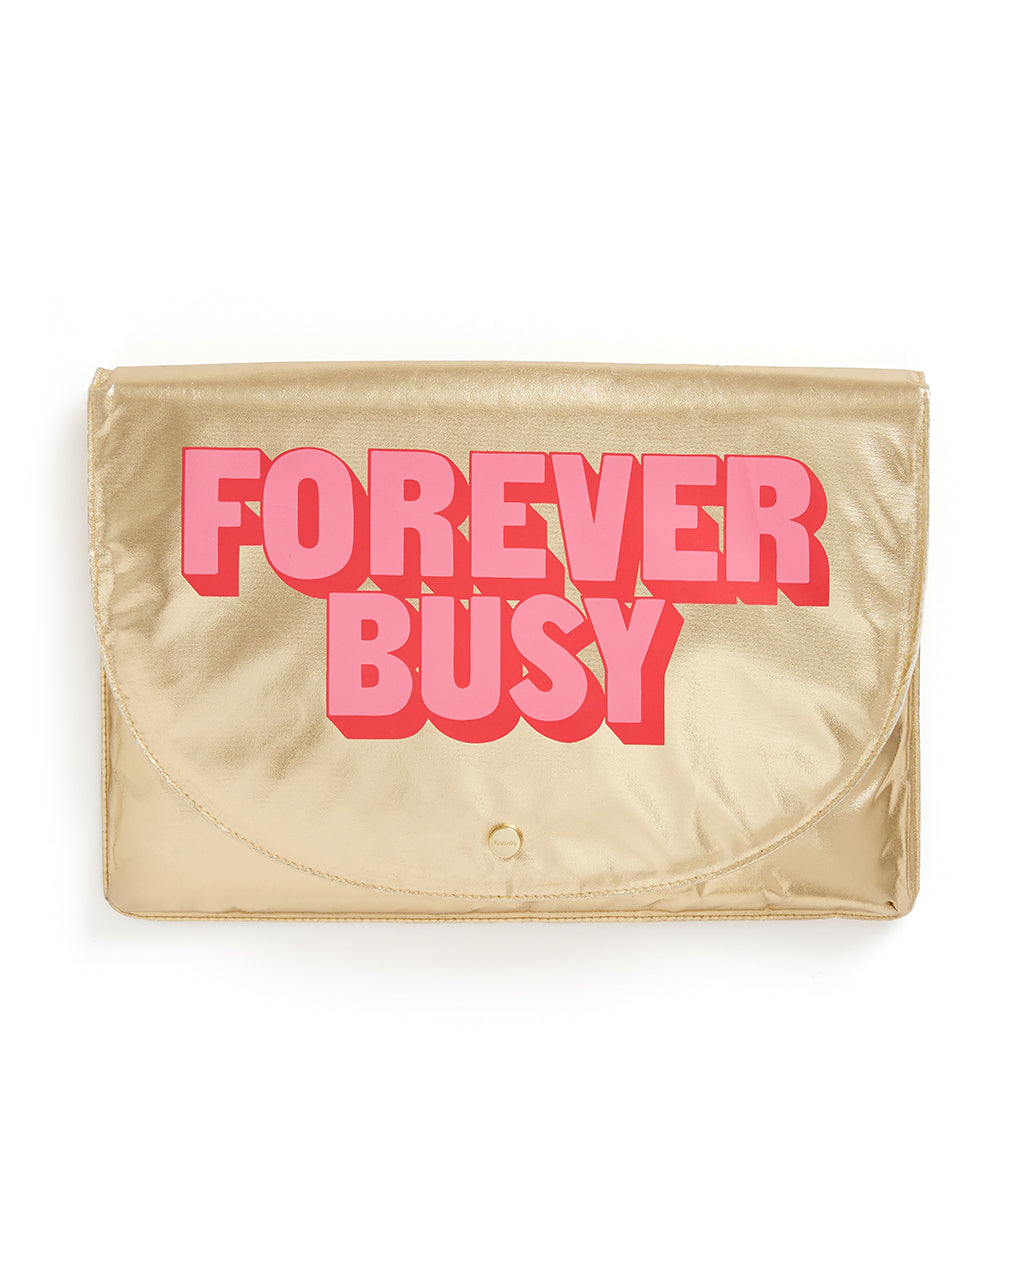 This Logged On Laptop Sleeve comes in metallic gold, with 'Forever Busy' printed in pink across the front.